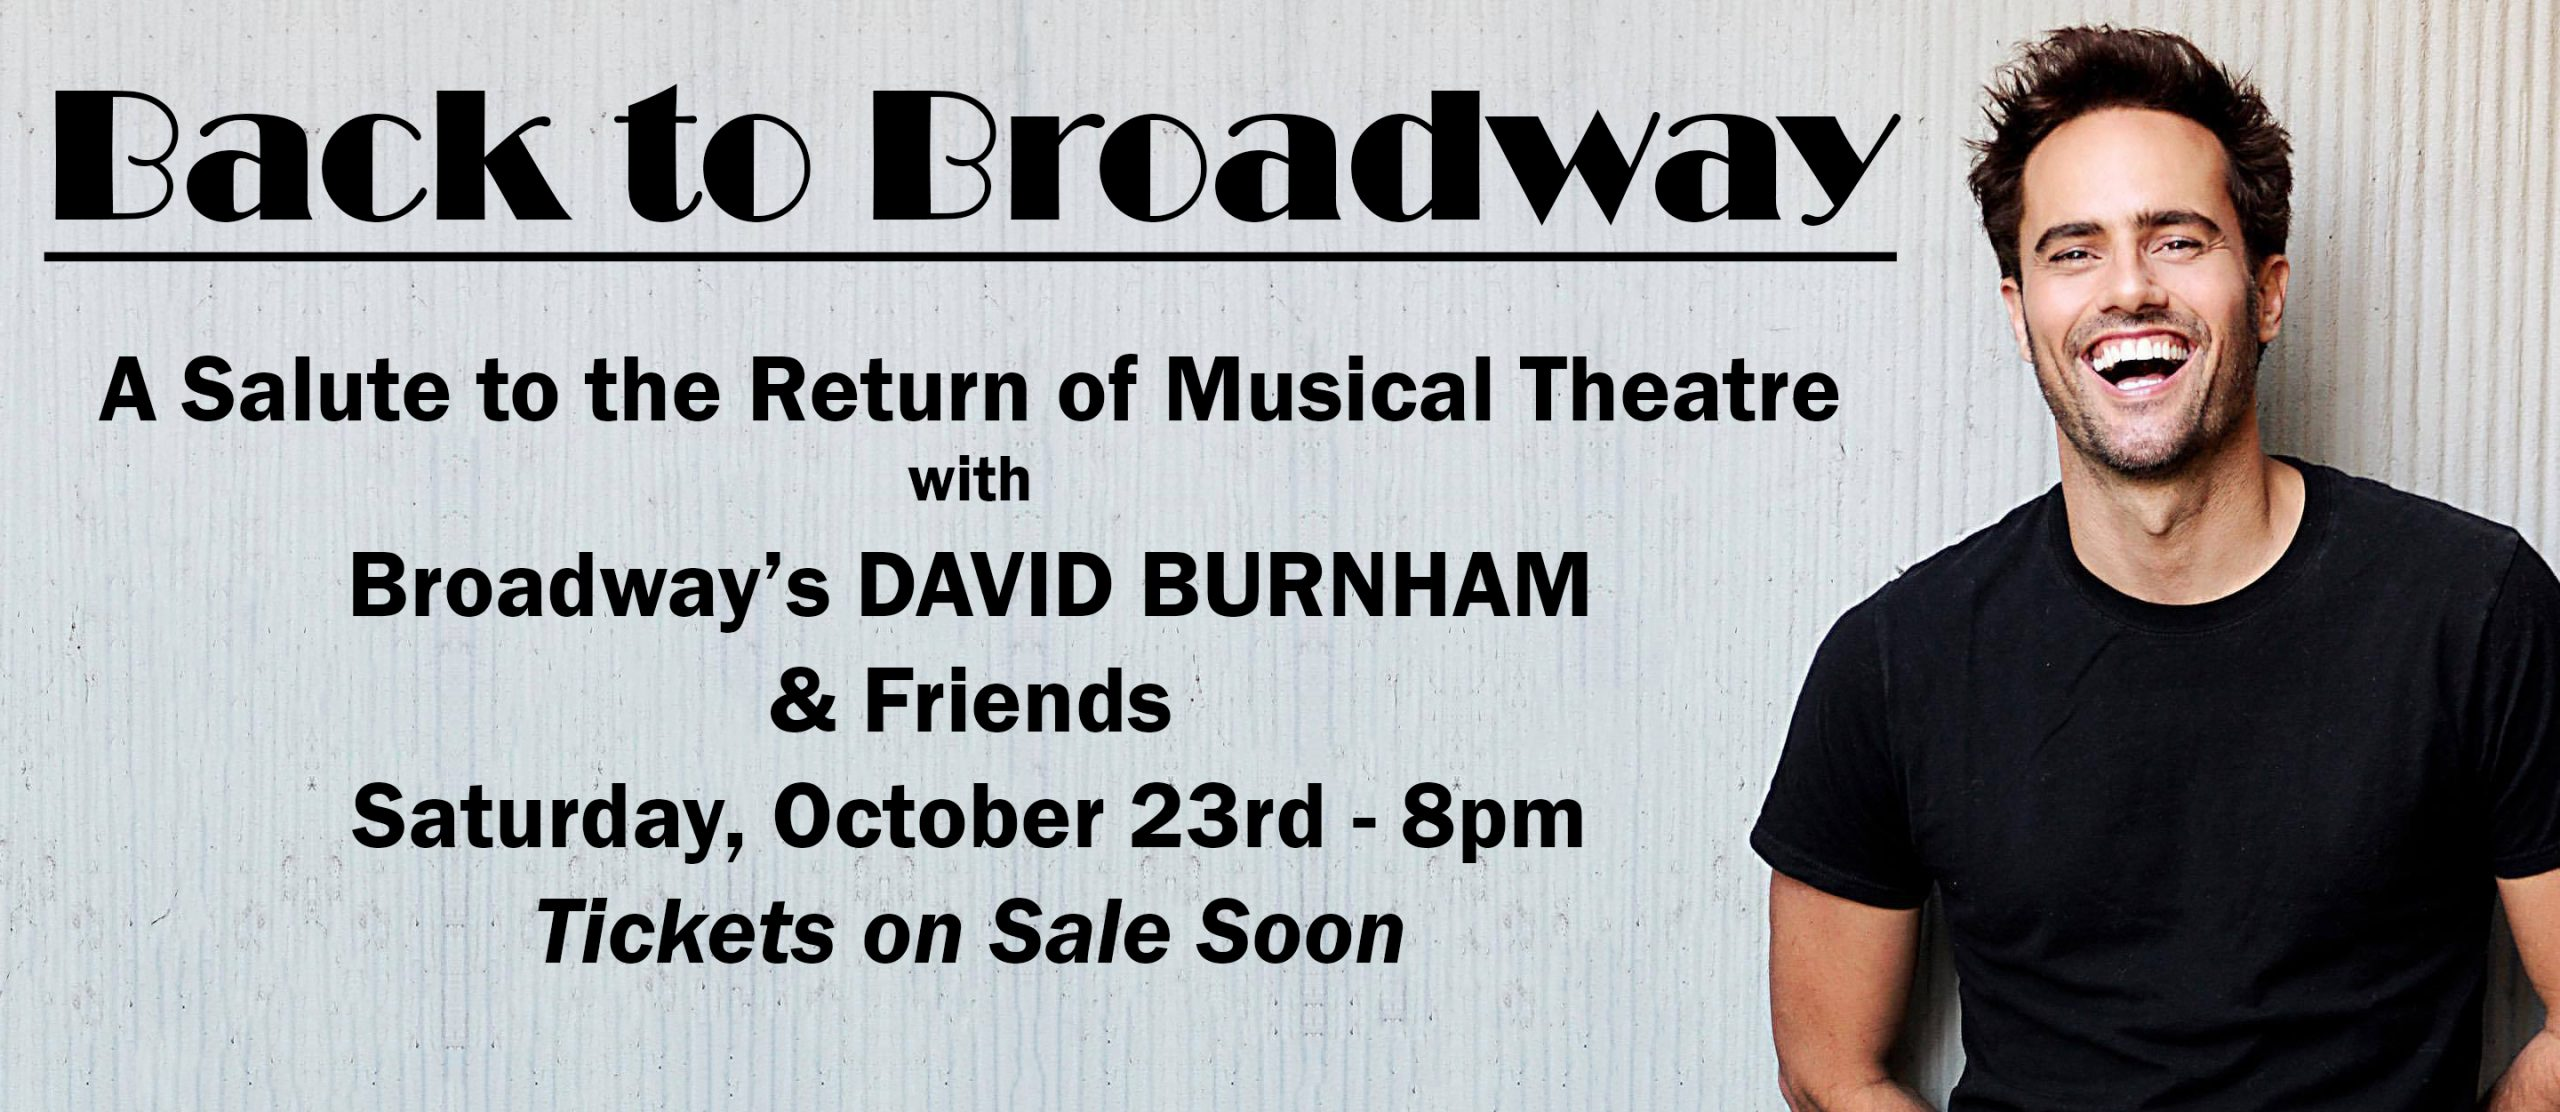 """""""Back to Broadway"""" A Salute to the Return of Musical Theatre  With Broadway's DAVID BURNHAM & Friends"""